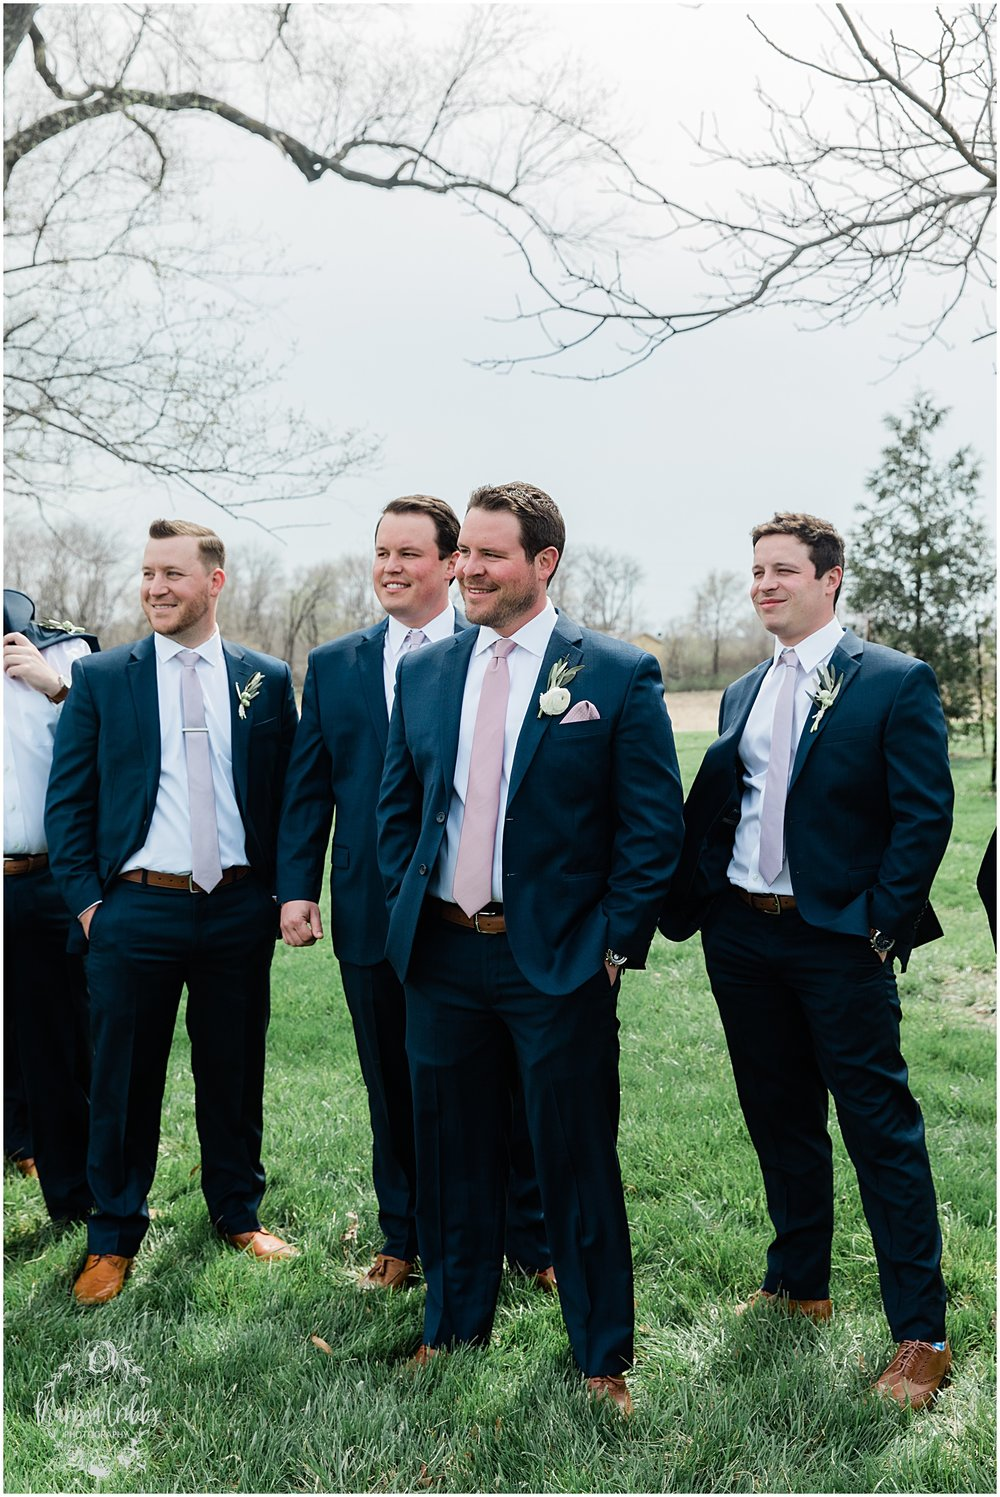 TILSON WEDDING | THE LEGACY AT GREEN HILLS | SIMPLE ELEGANCE | MARISSA CRIBBS PHOTOGRAPHY_4678.jpg